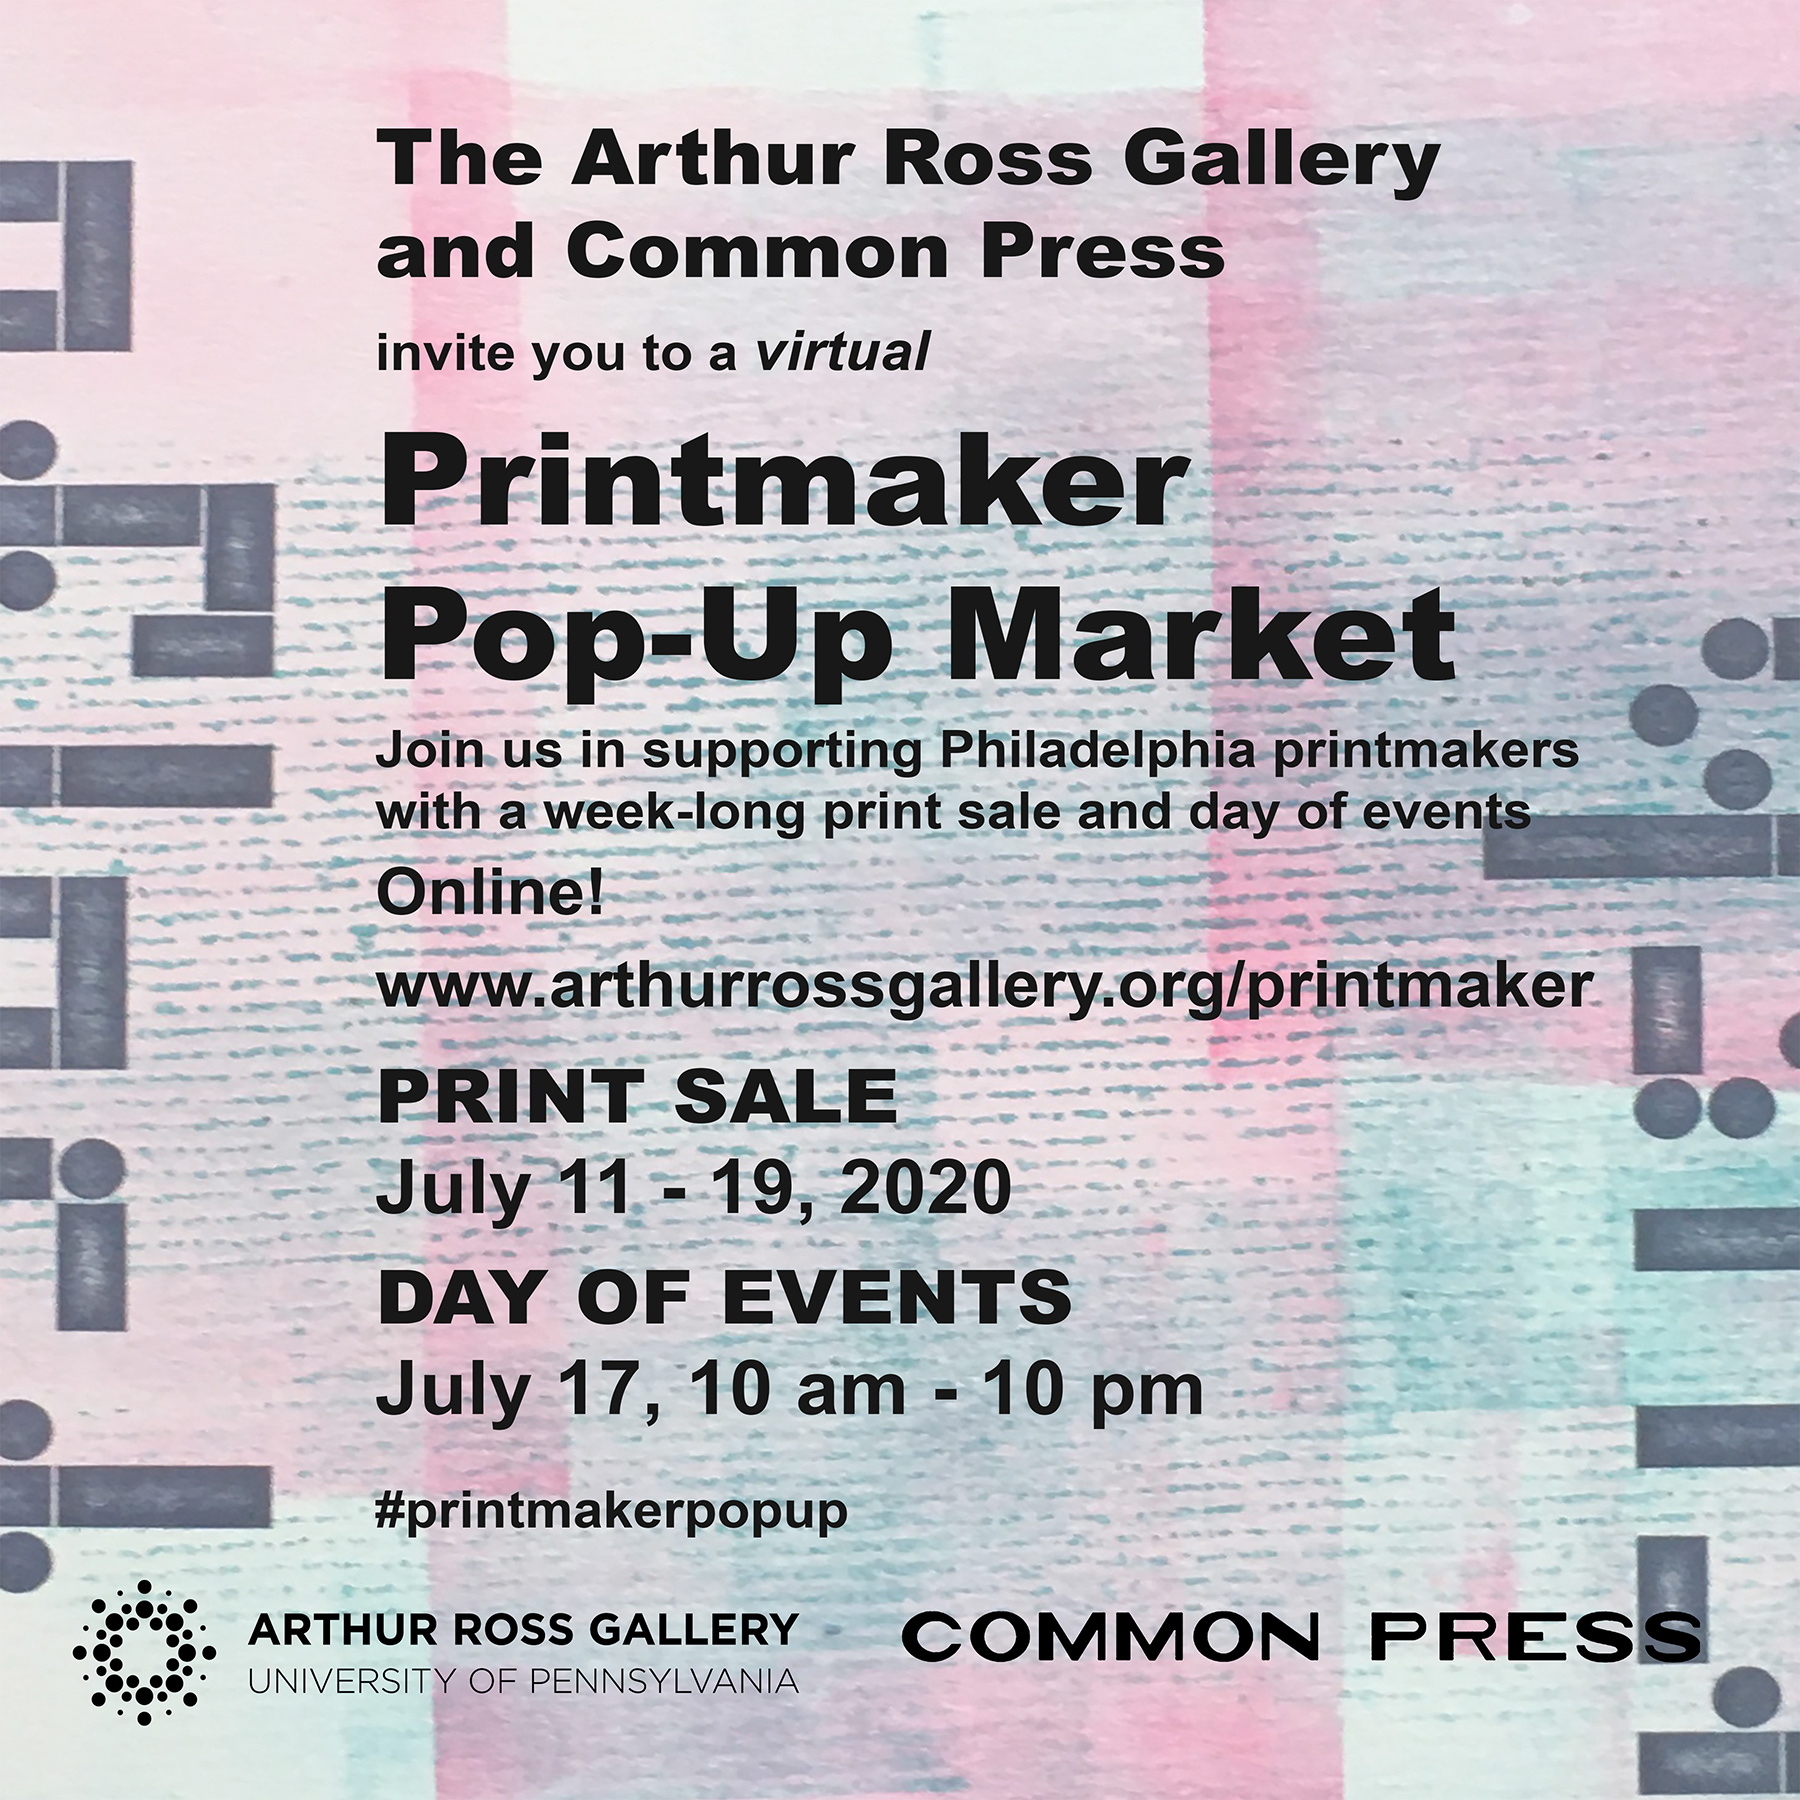 Printmaker Pop-Up Market hosted by Arthur Ross Gallery & Common Press